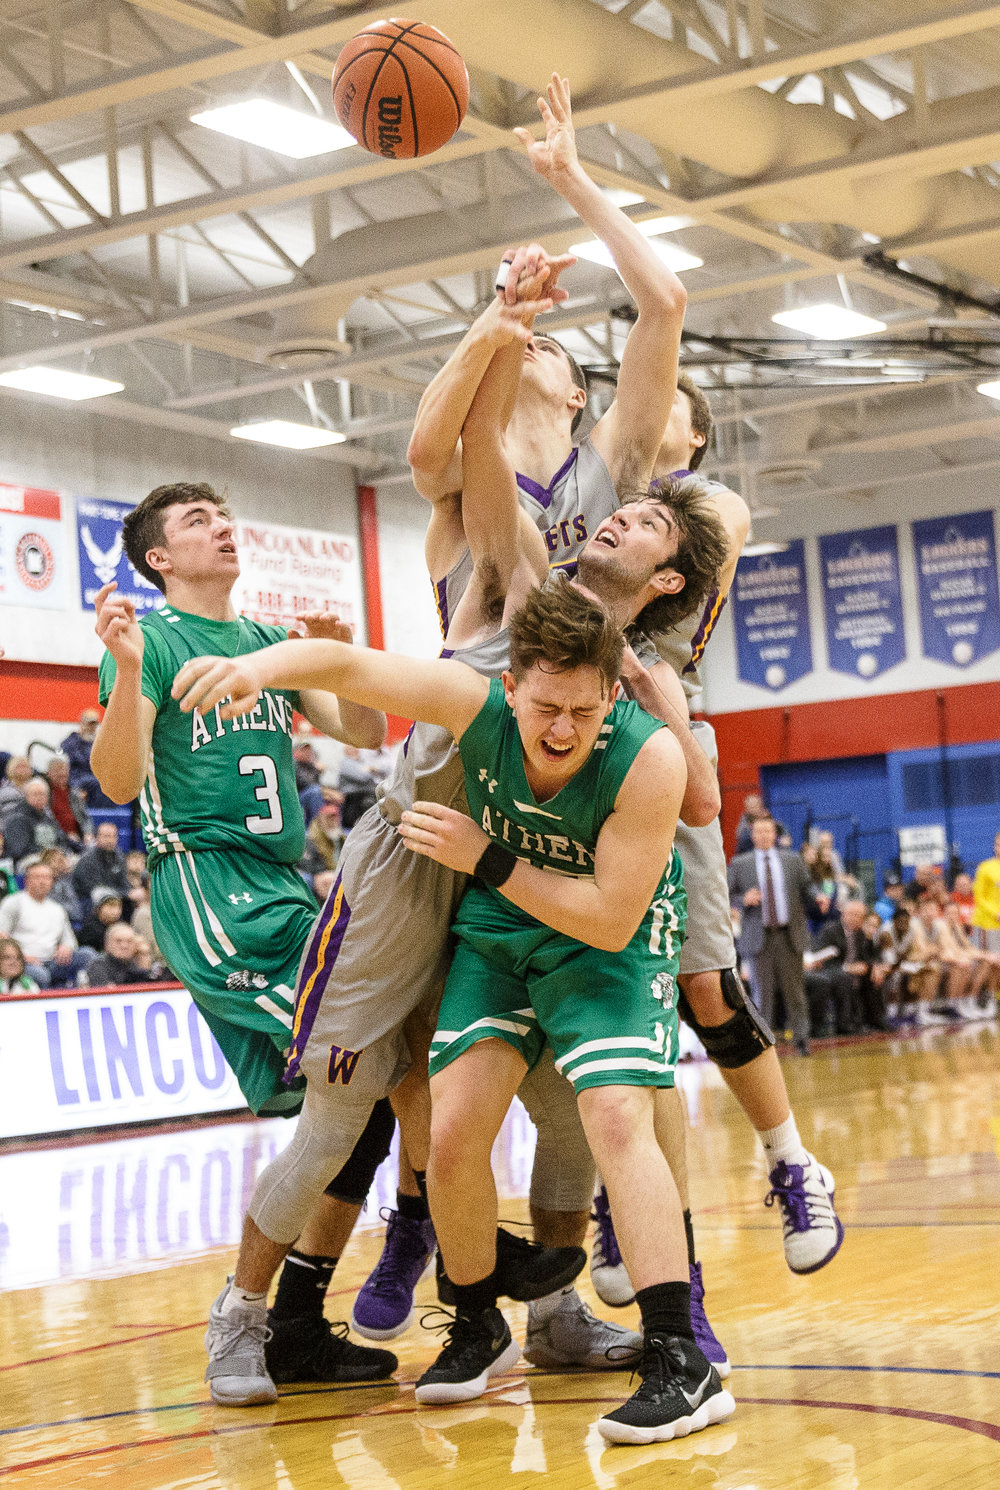 Athens' Nic Laird (13) collides with Williamsville's Joseph Mitchell (13) as they go for a rebound underneath the basket in the first half during the semifinals of the Boys Sangamon County Tournament at Lincoln Land Community College's Cass Gymnasium, Wednesday, Jan. 10, 2018, in Springfield, Ill. [Justin L. Fowler/The State Journal-Register]